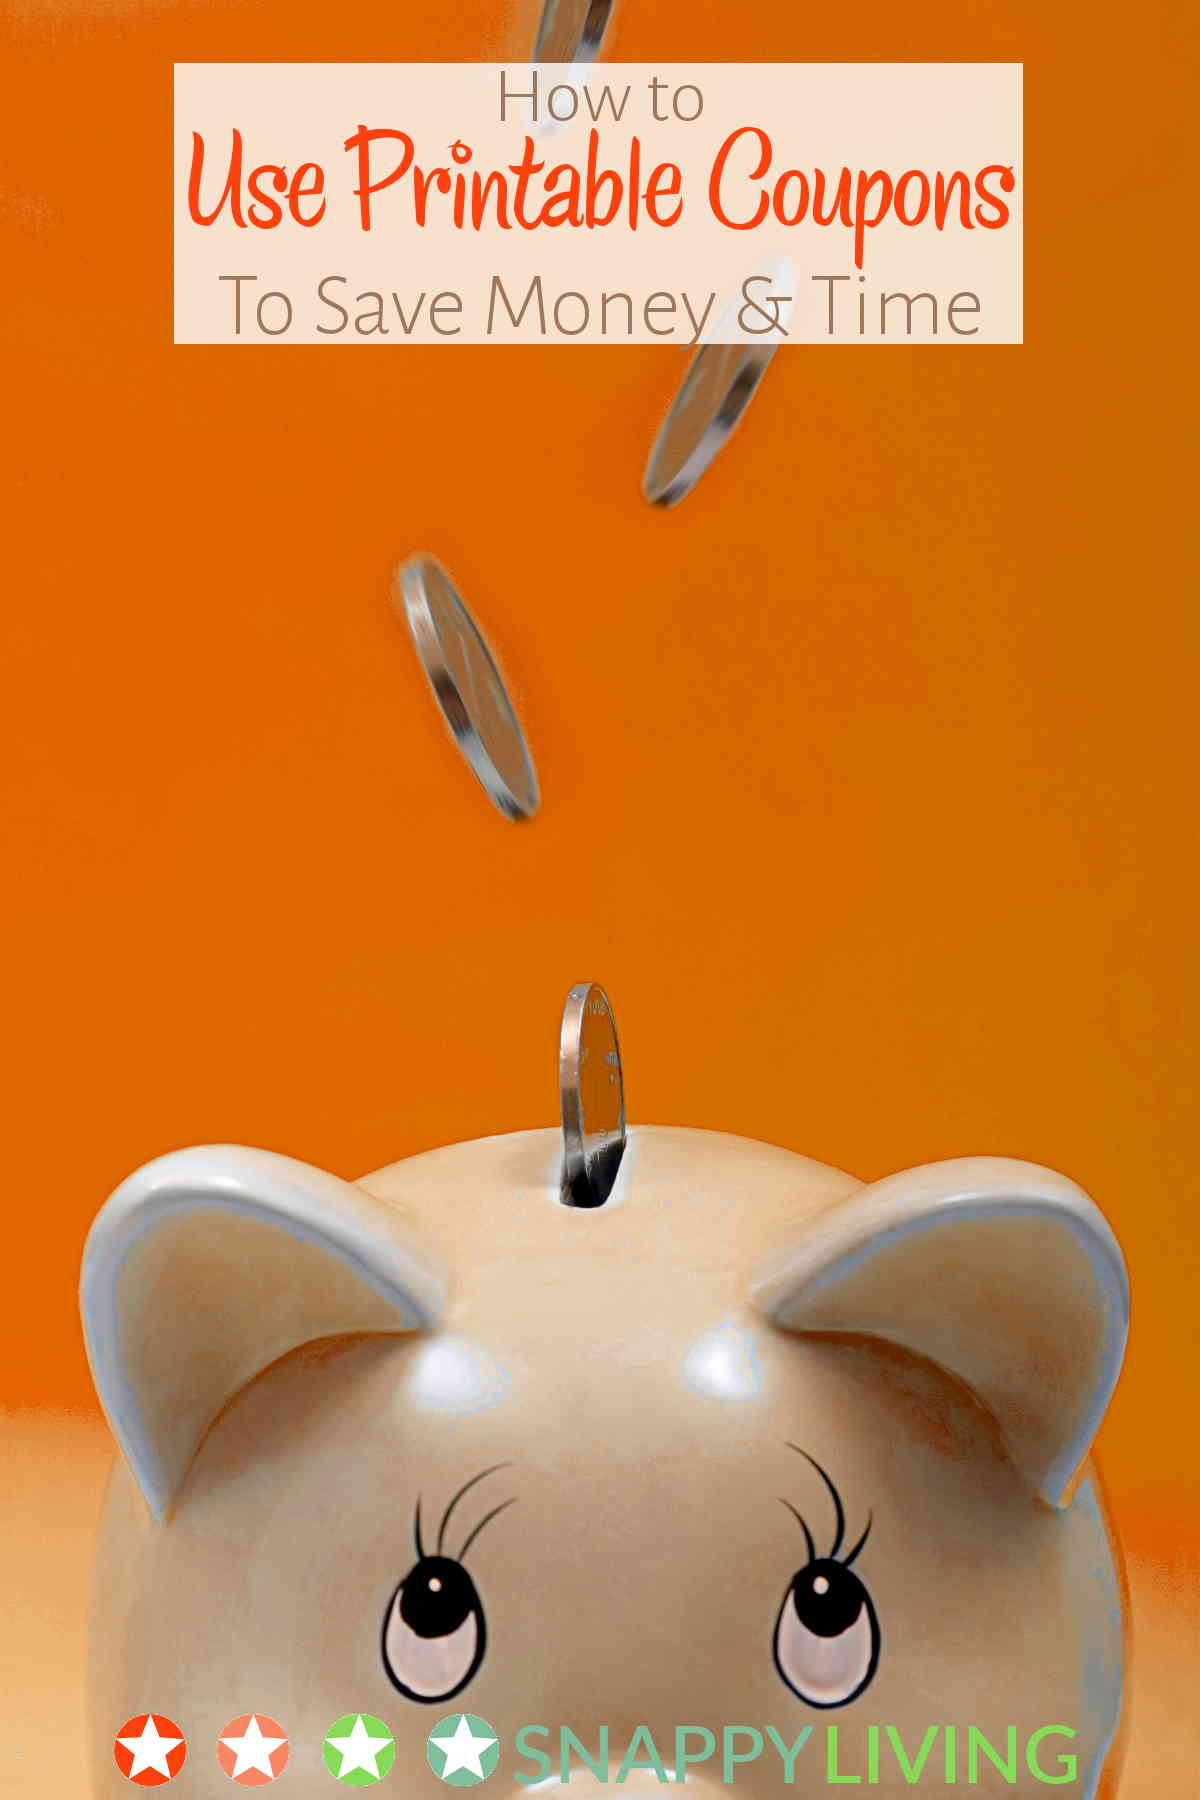 Coins falling into piggy bank